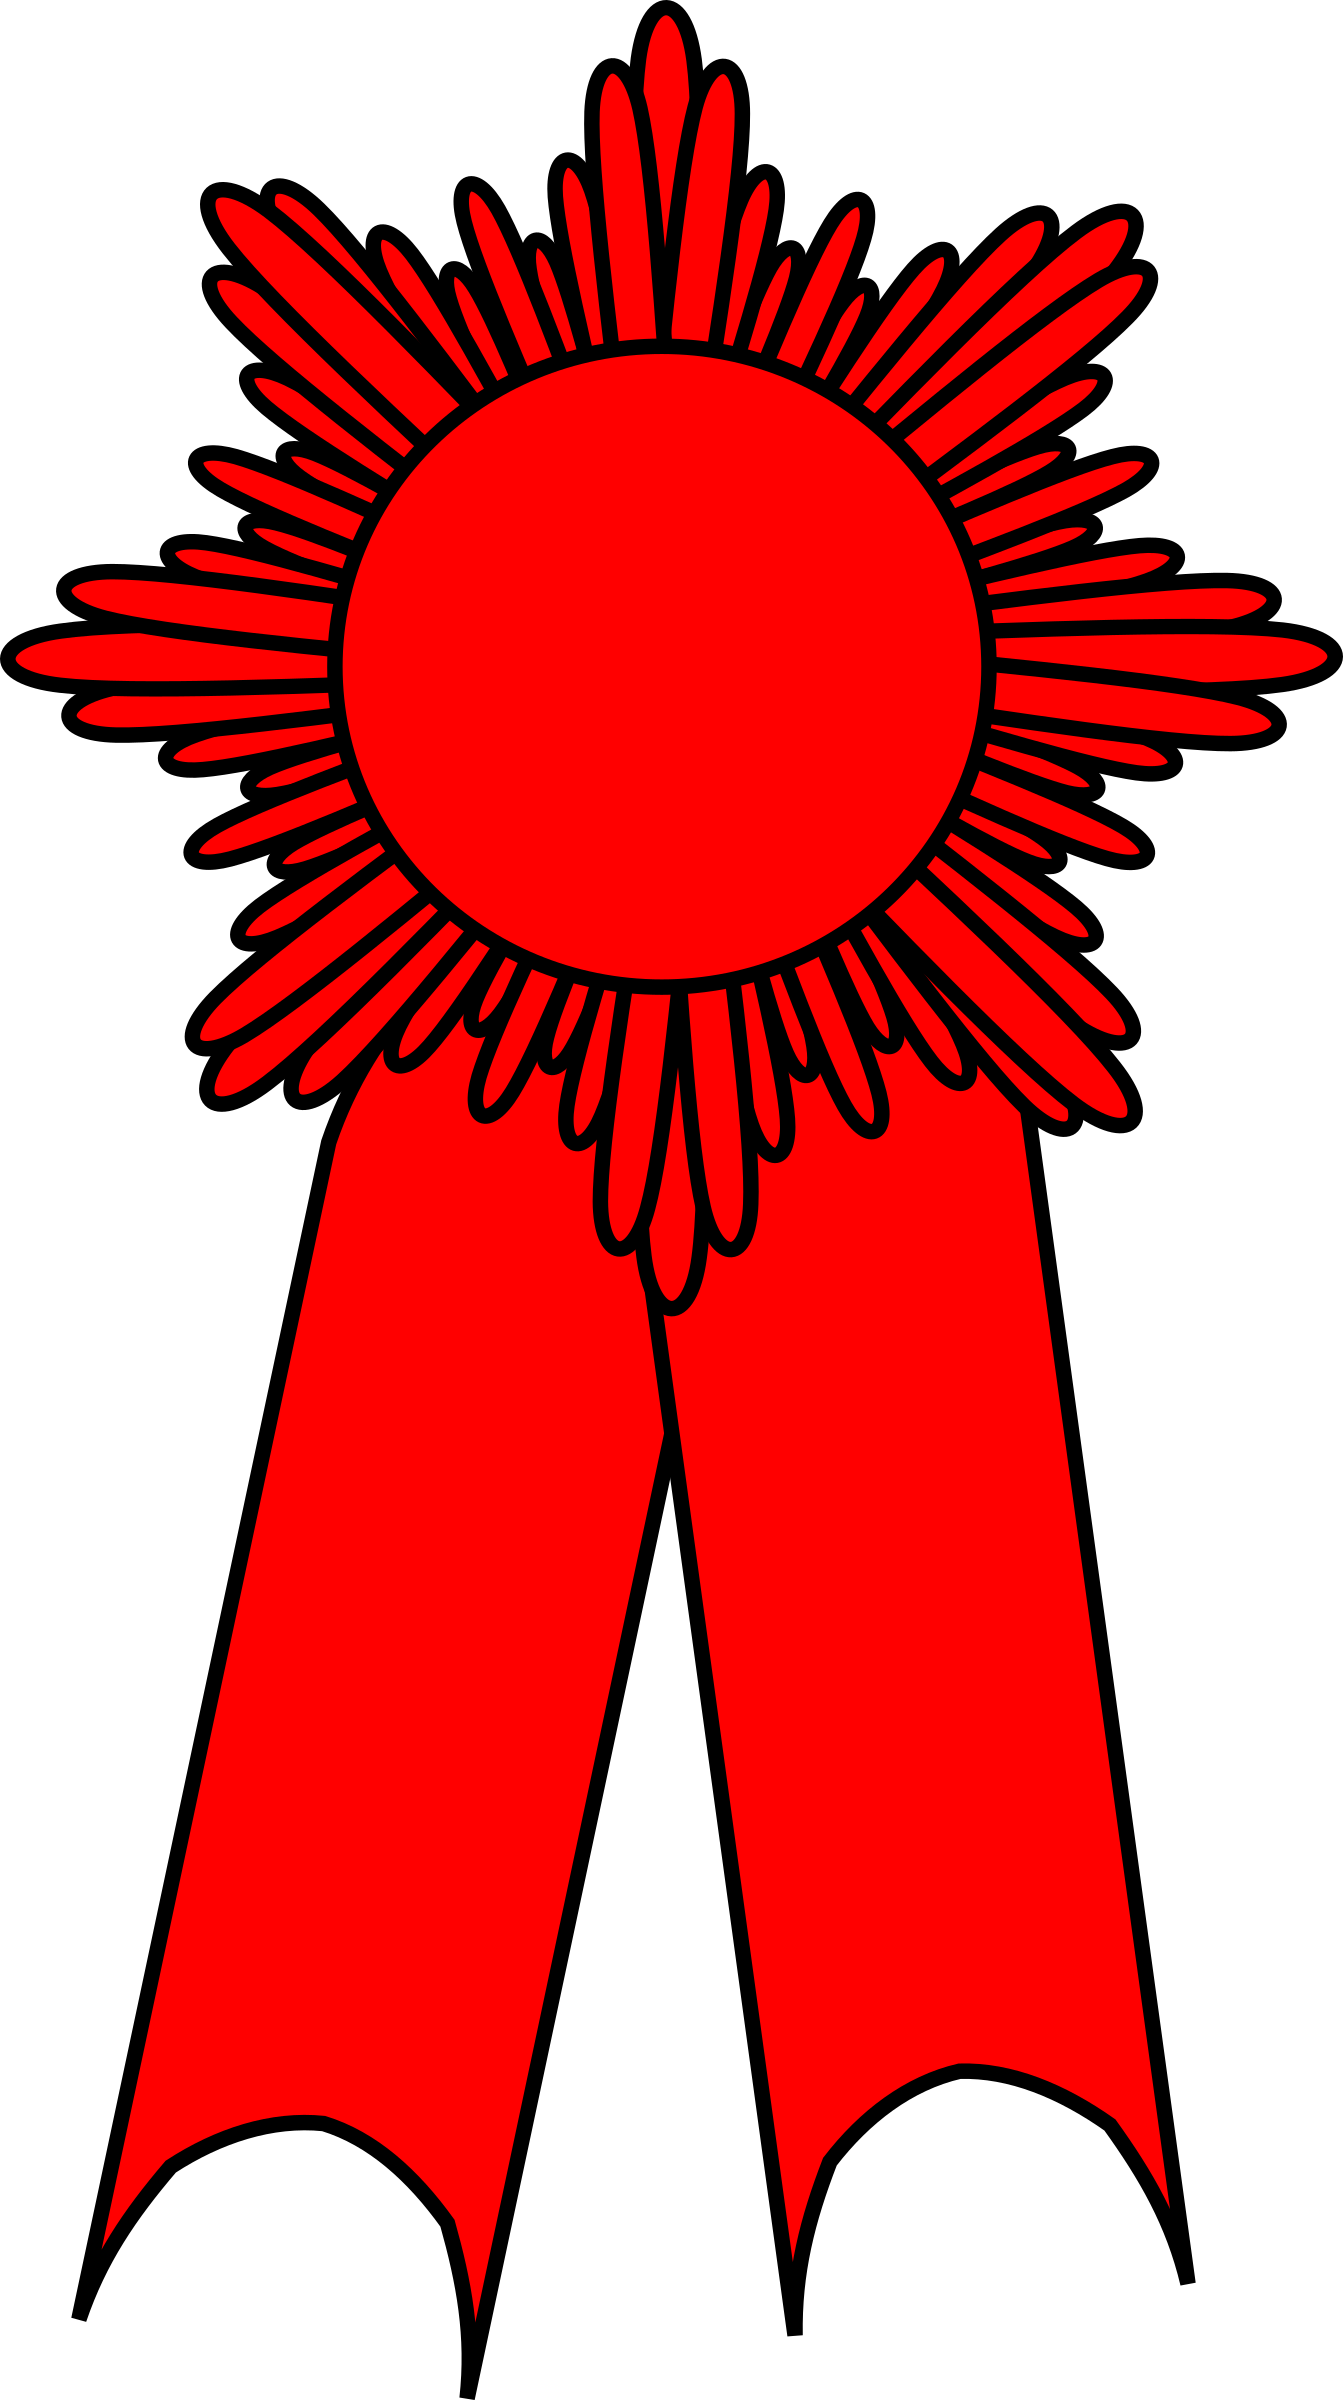 Red ribbon award clipart banner transparent stock Clipart - prize ribbon red banner transparent stock